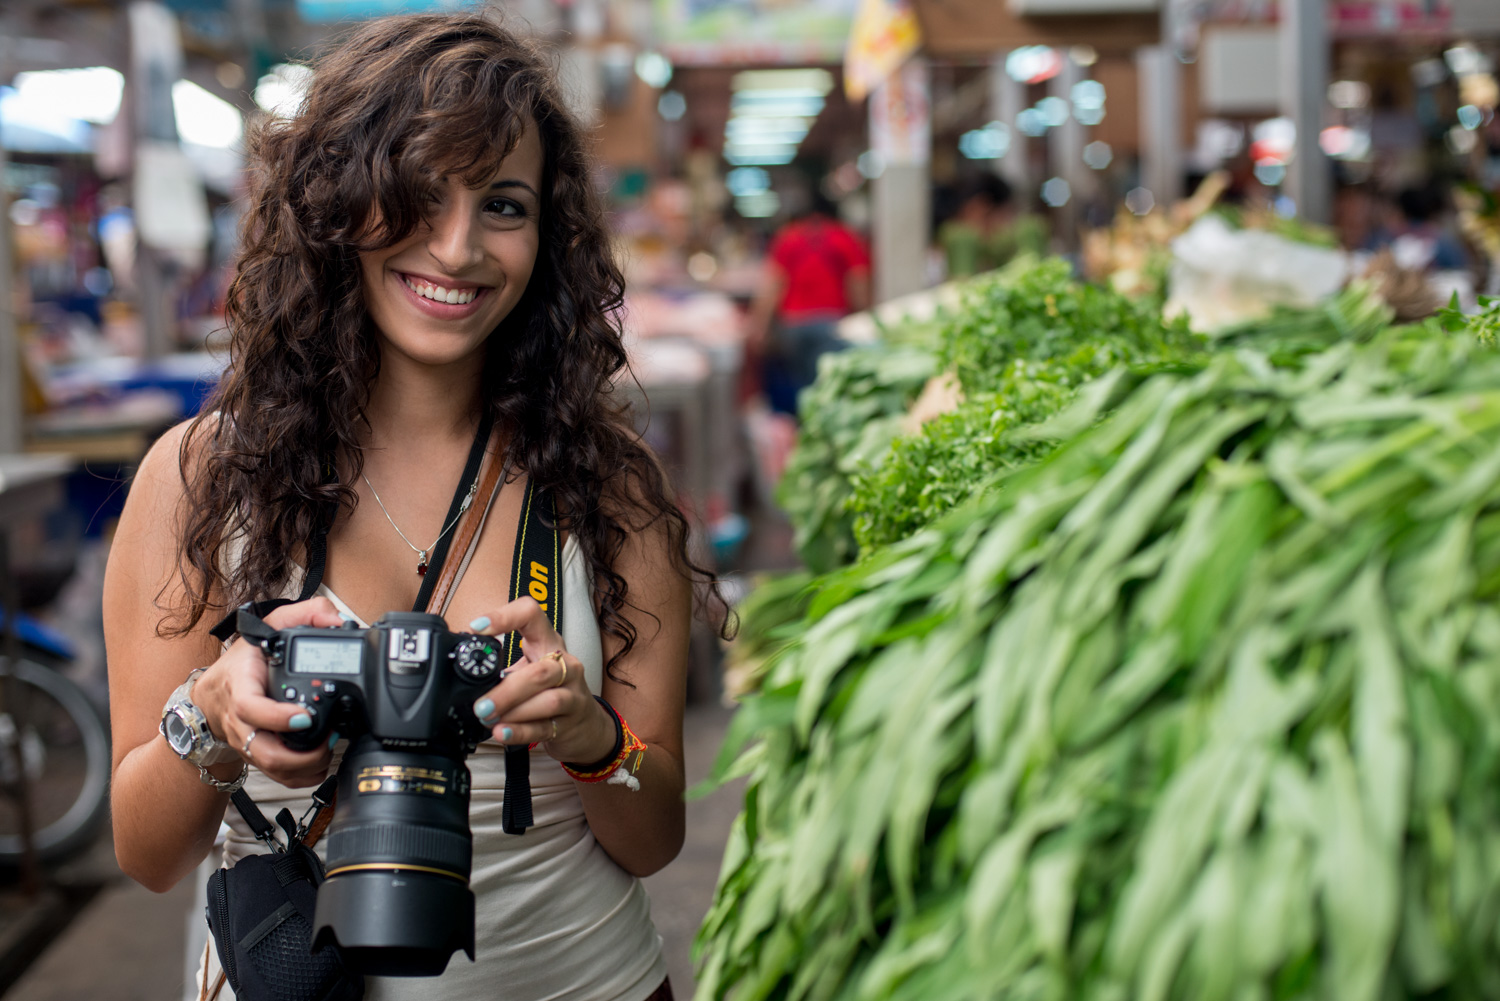 Why Carrying Less Camera Gear Will Make You a Better Photographer